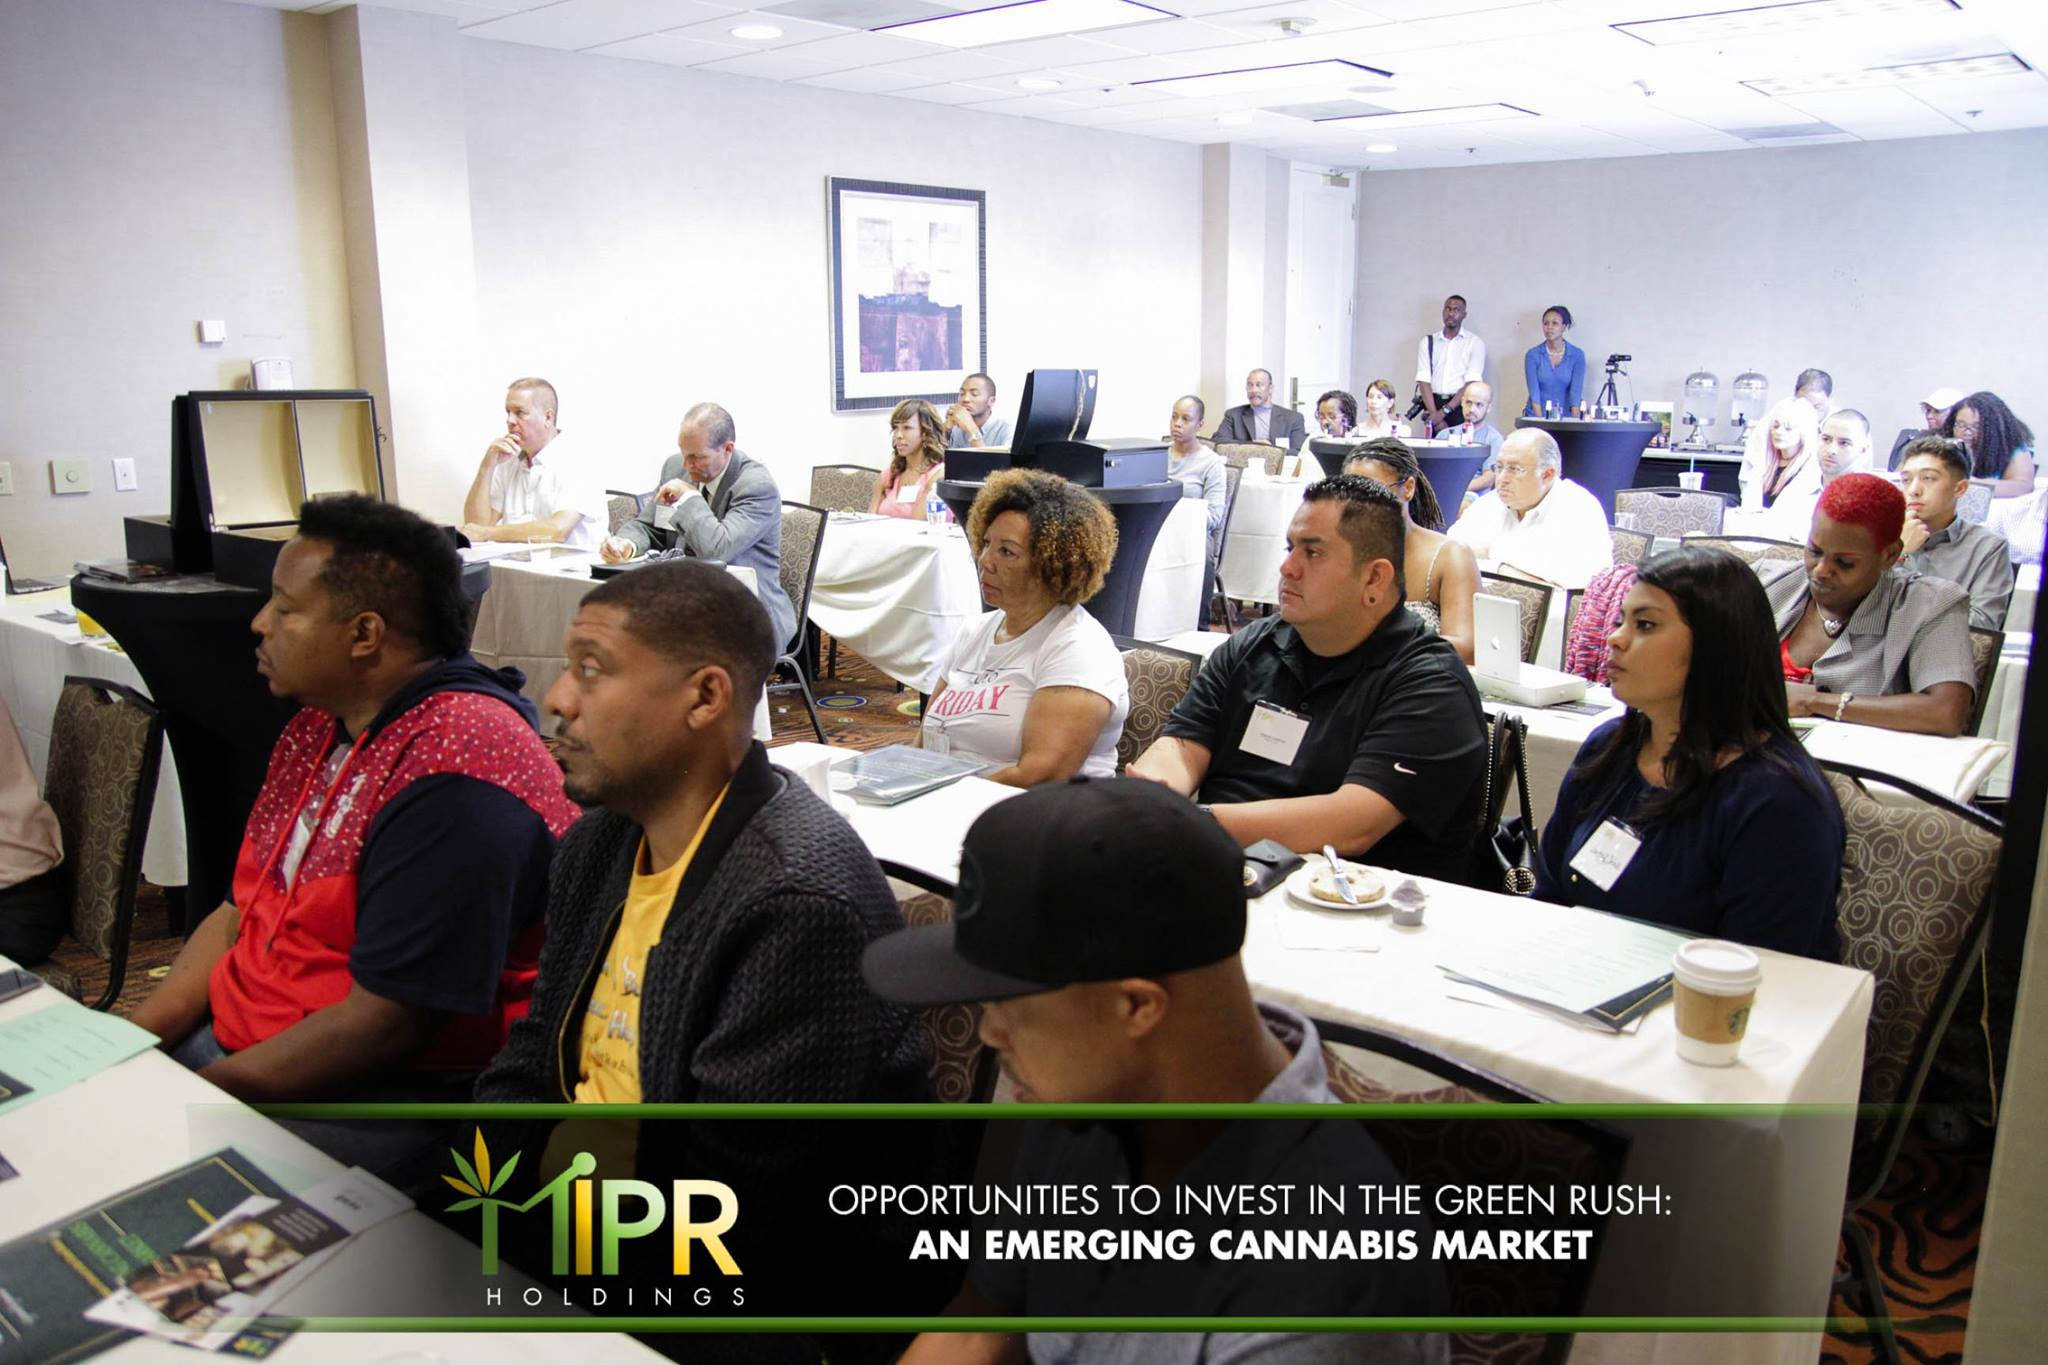 Let s look at it from an investment prospective if a company had - One Of Mipr Holdings Investment Education Workshops Courtesy Of Khadijah Adams